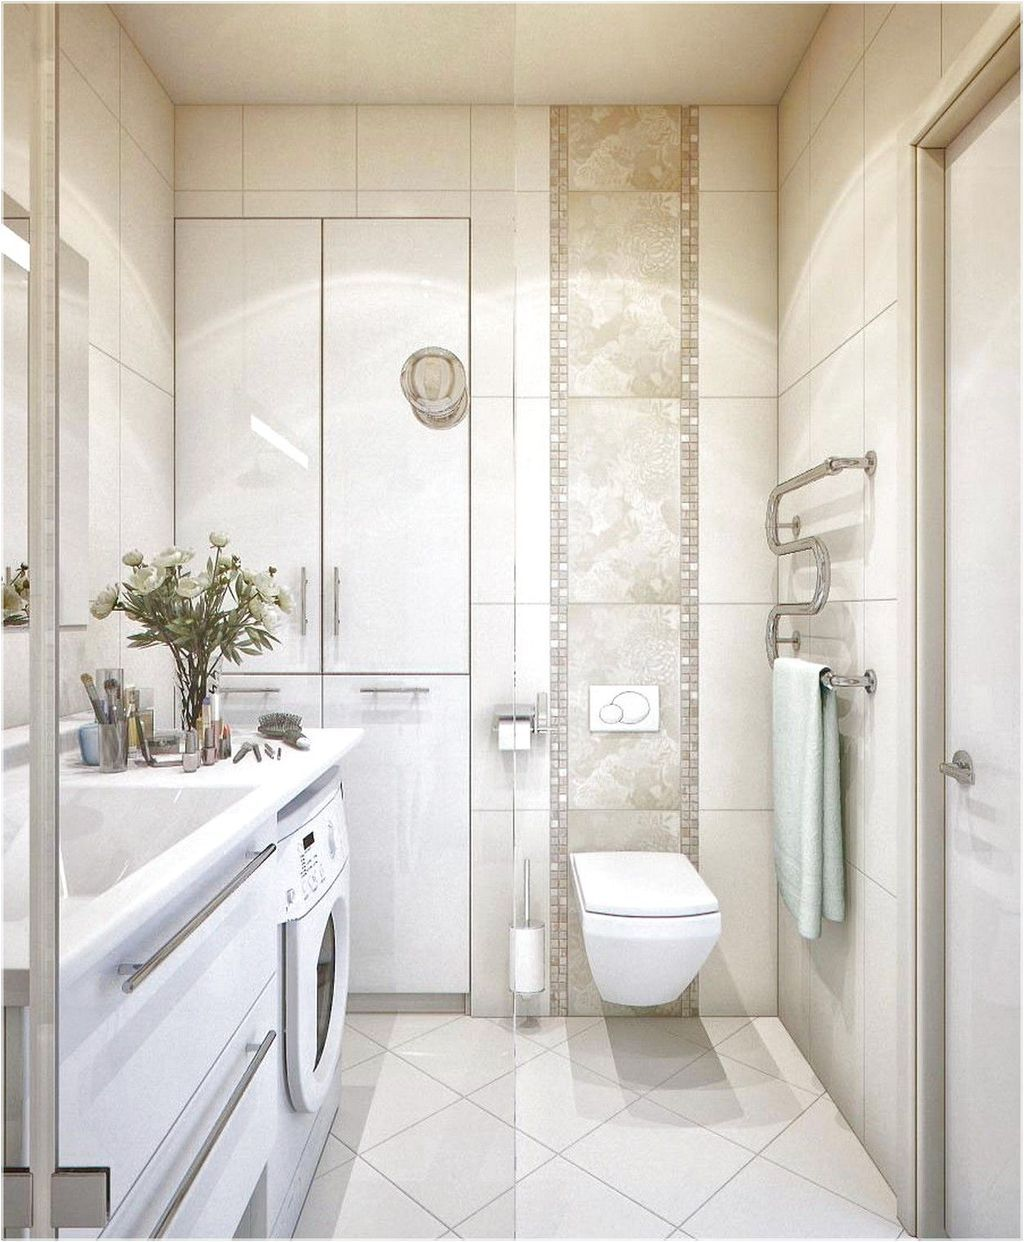 20+ Elegant And Simple Bathroom Designs For Small Spaces ...